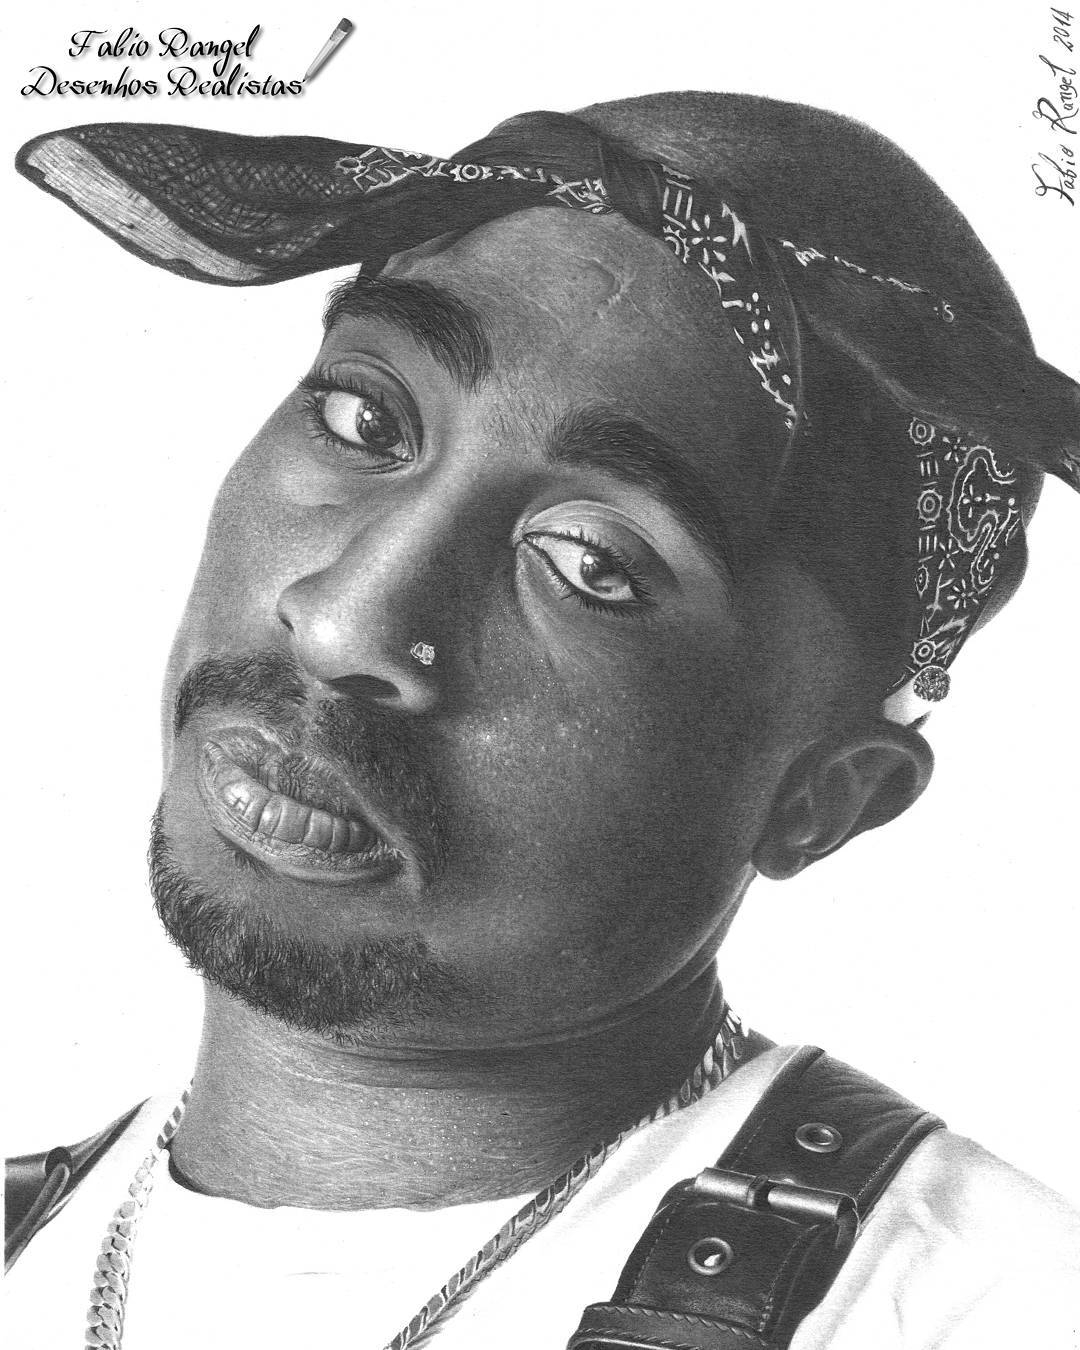 18-Tupac-Shakur-Fabio-Rangel-Drawings-of-Protagonists-from-TV-and-Movies-www-designstack-co